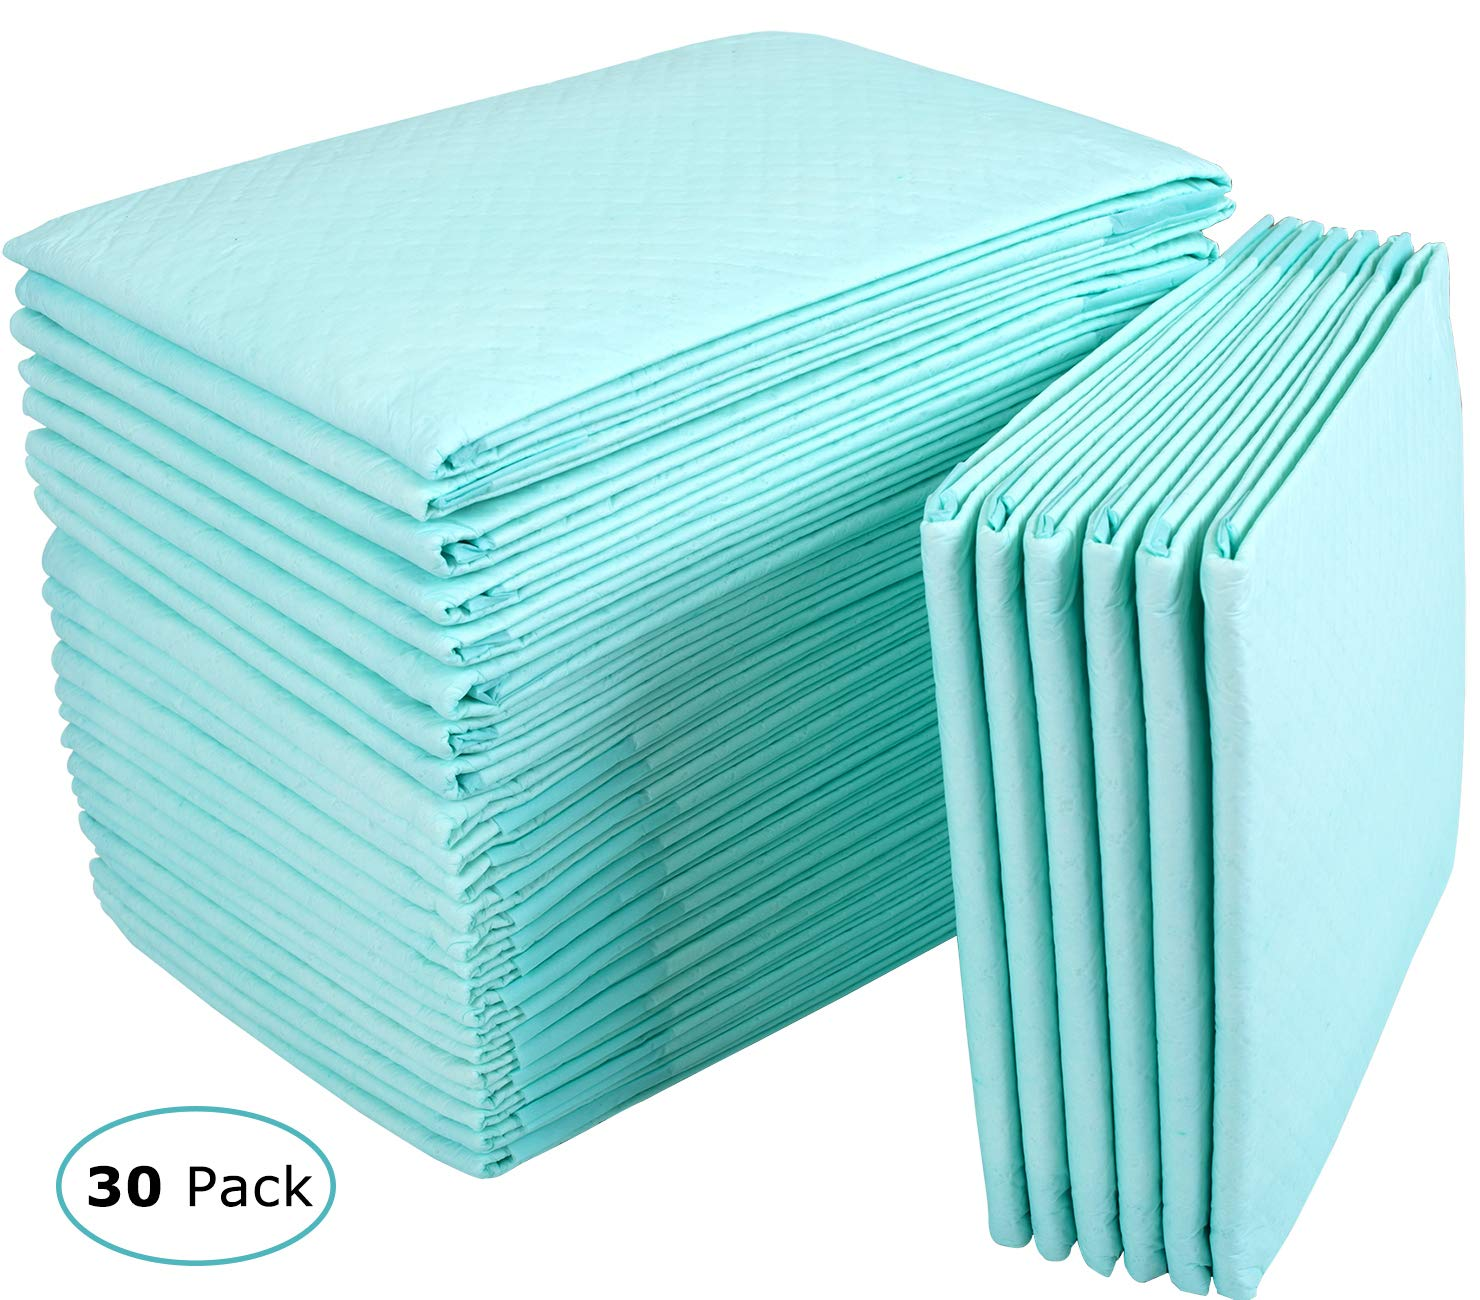 Incontinence Bed Pads Disposable Underpads for Adults, Children and  Pets,Absorbency Disposable Bed